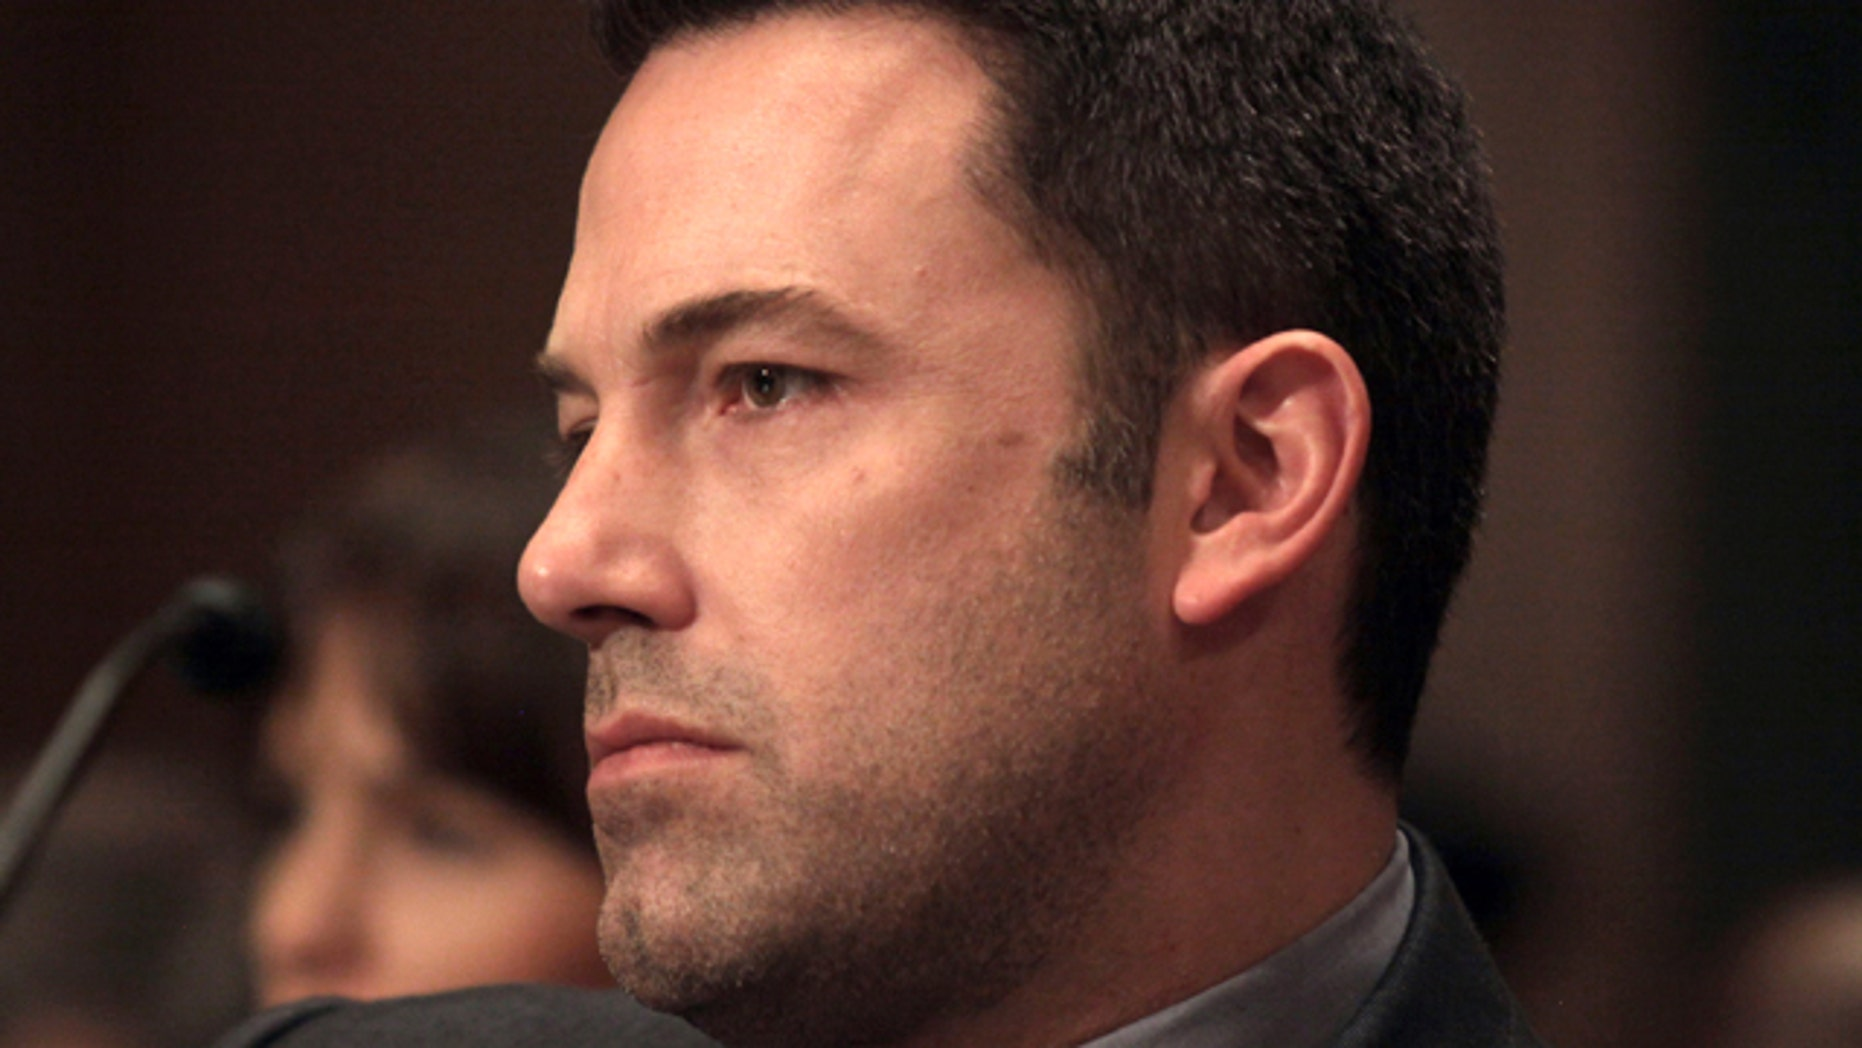 March 26, 2015: Actor Ben Affleck is seen on Capitol Hill in Washington after testifying before the Senate State, Foreign Operations, and Related Programs subcommittee hearing on diplomacy, development and national security. (AP Photo/Lauren Victoria Burke)